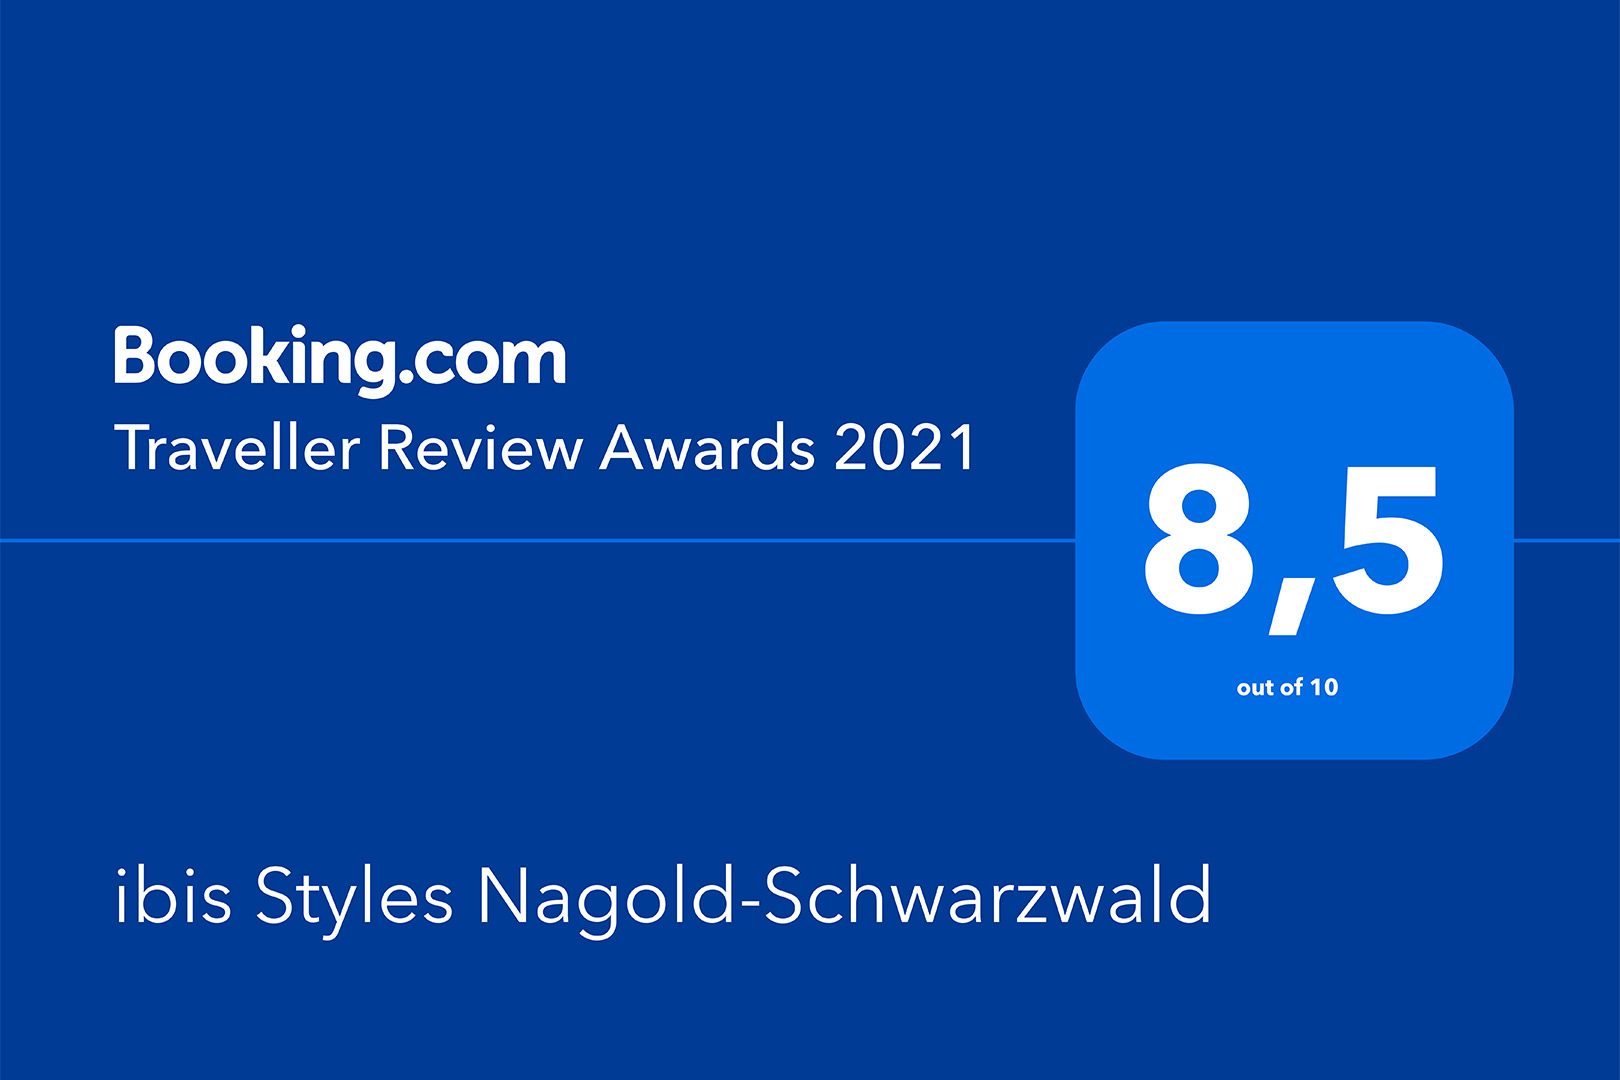 ibis Styles Nagold-Schwarzwald - Traveller Review Award 2021